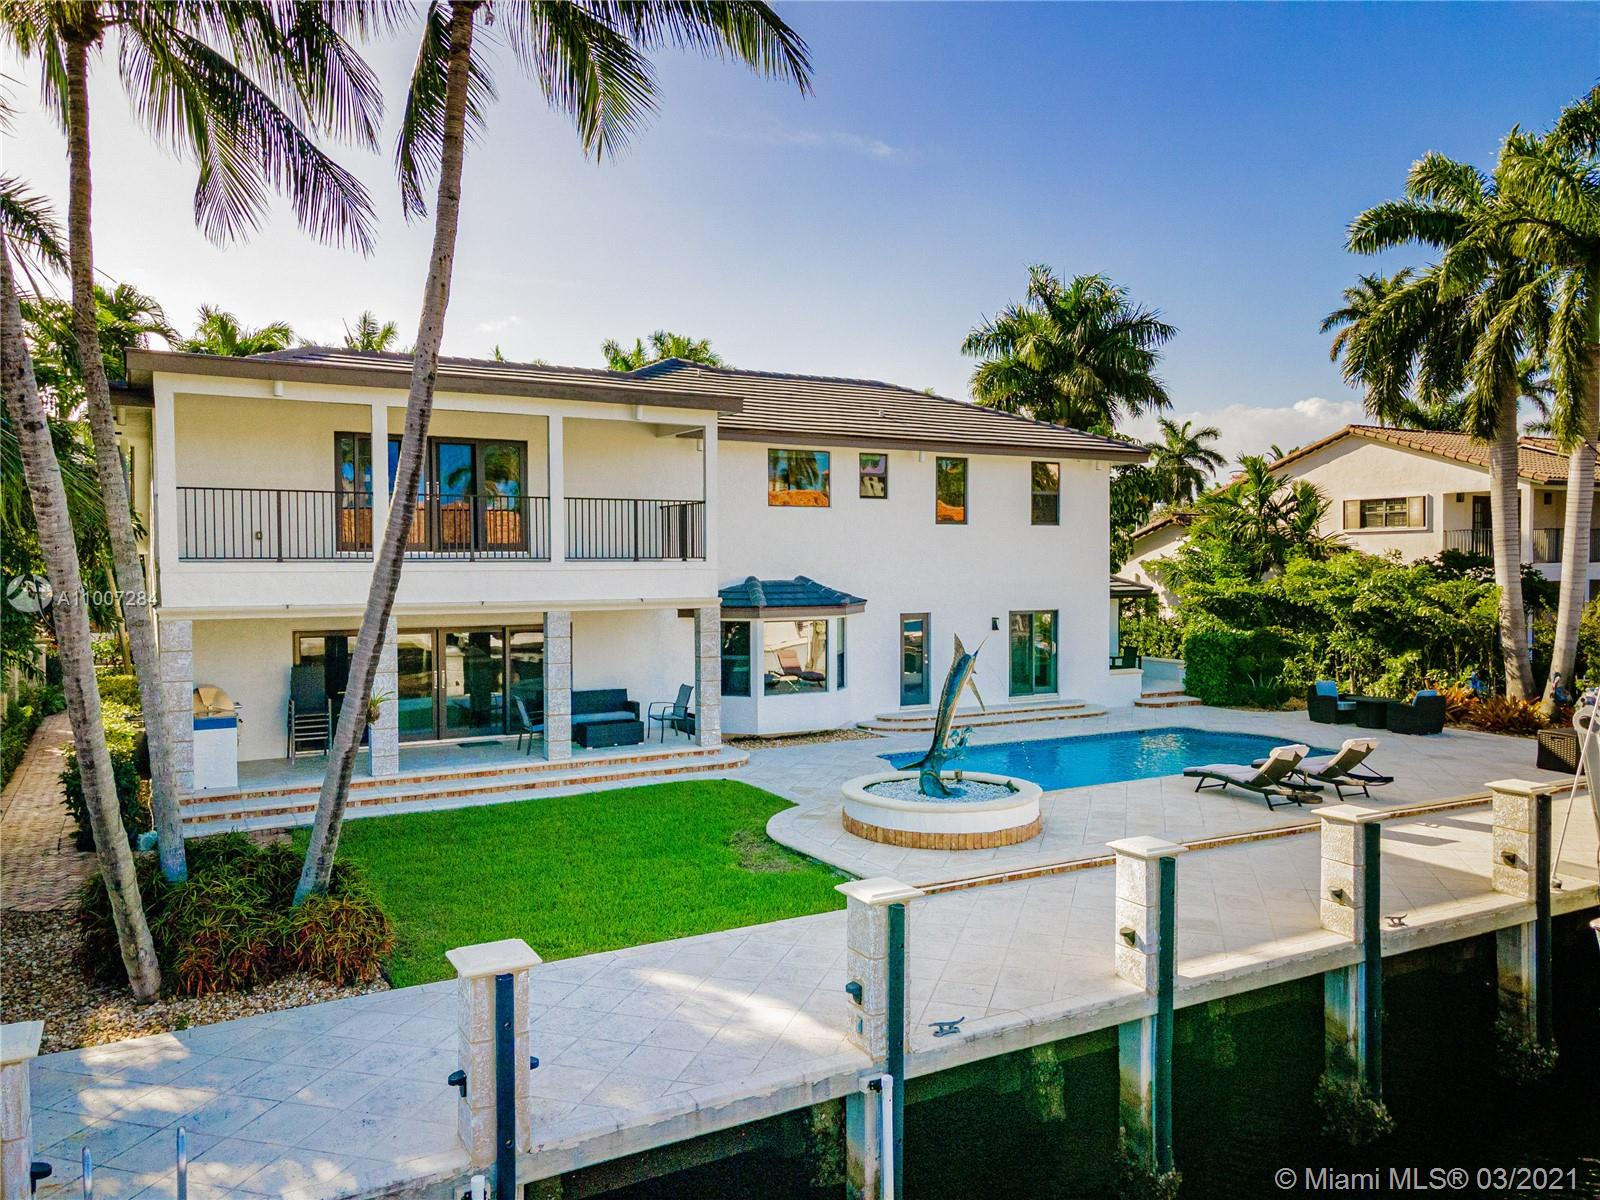 Gorgeous waterfront property with 100 ft private dock and boat lift. Close to intracoastal water, and ocean access. This 5-bedroom home has a full bathroom in every room, and 1 half bath downstairs. Master suite is upstairs with exquisite bathroom with large walk in shower and deep bathtub, both overlooks the water. Master suite also features private patio overlooking the water. Kitchen completely remodeled with new cabinets, deep sink, kitchen island, and quartz countertops. House also features impact windows throughout property. Backyard features a heated pool, covered patio with outdoor BBQ, and faces the east. 3 car garage with ample parking in front driveway. Private walkway to entrance to the front of the home.